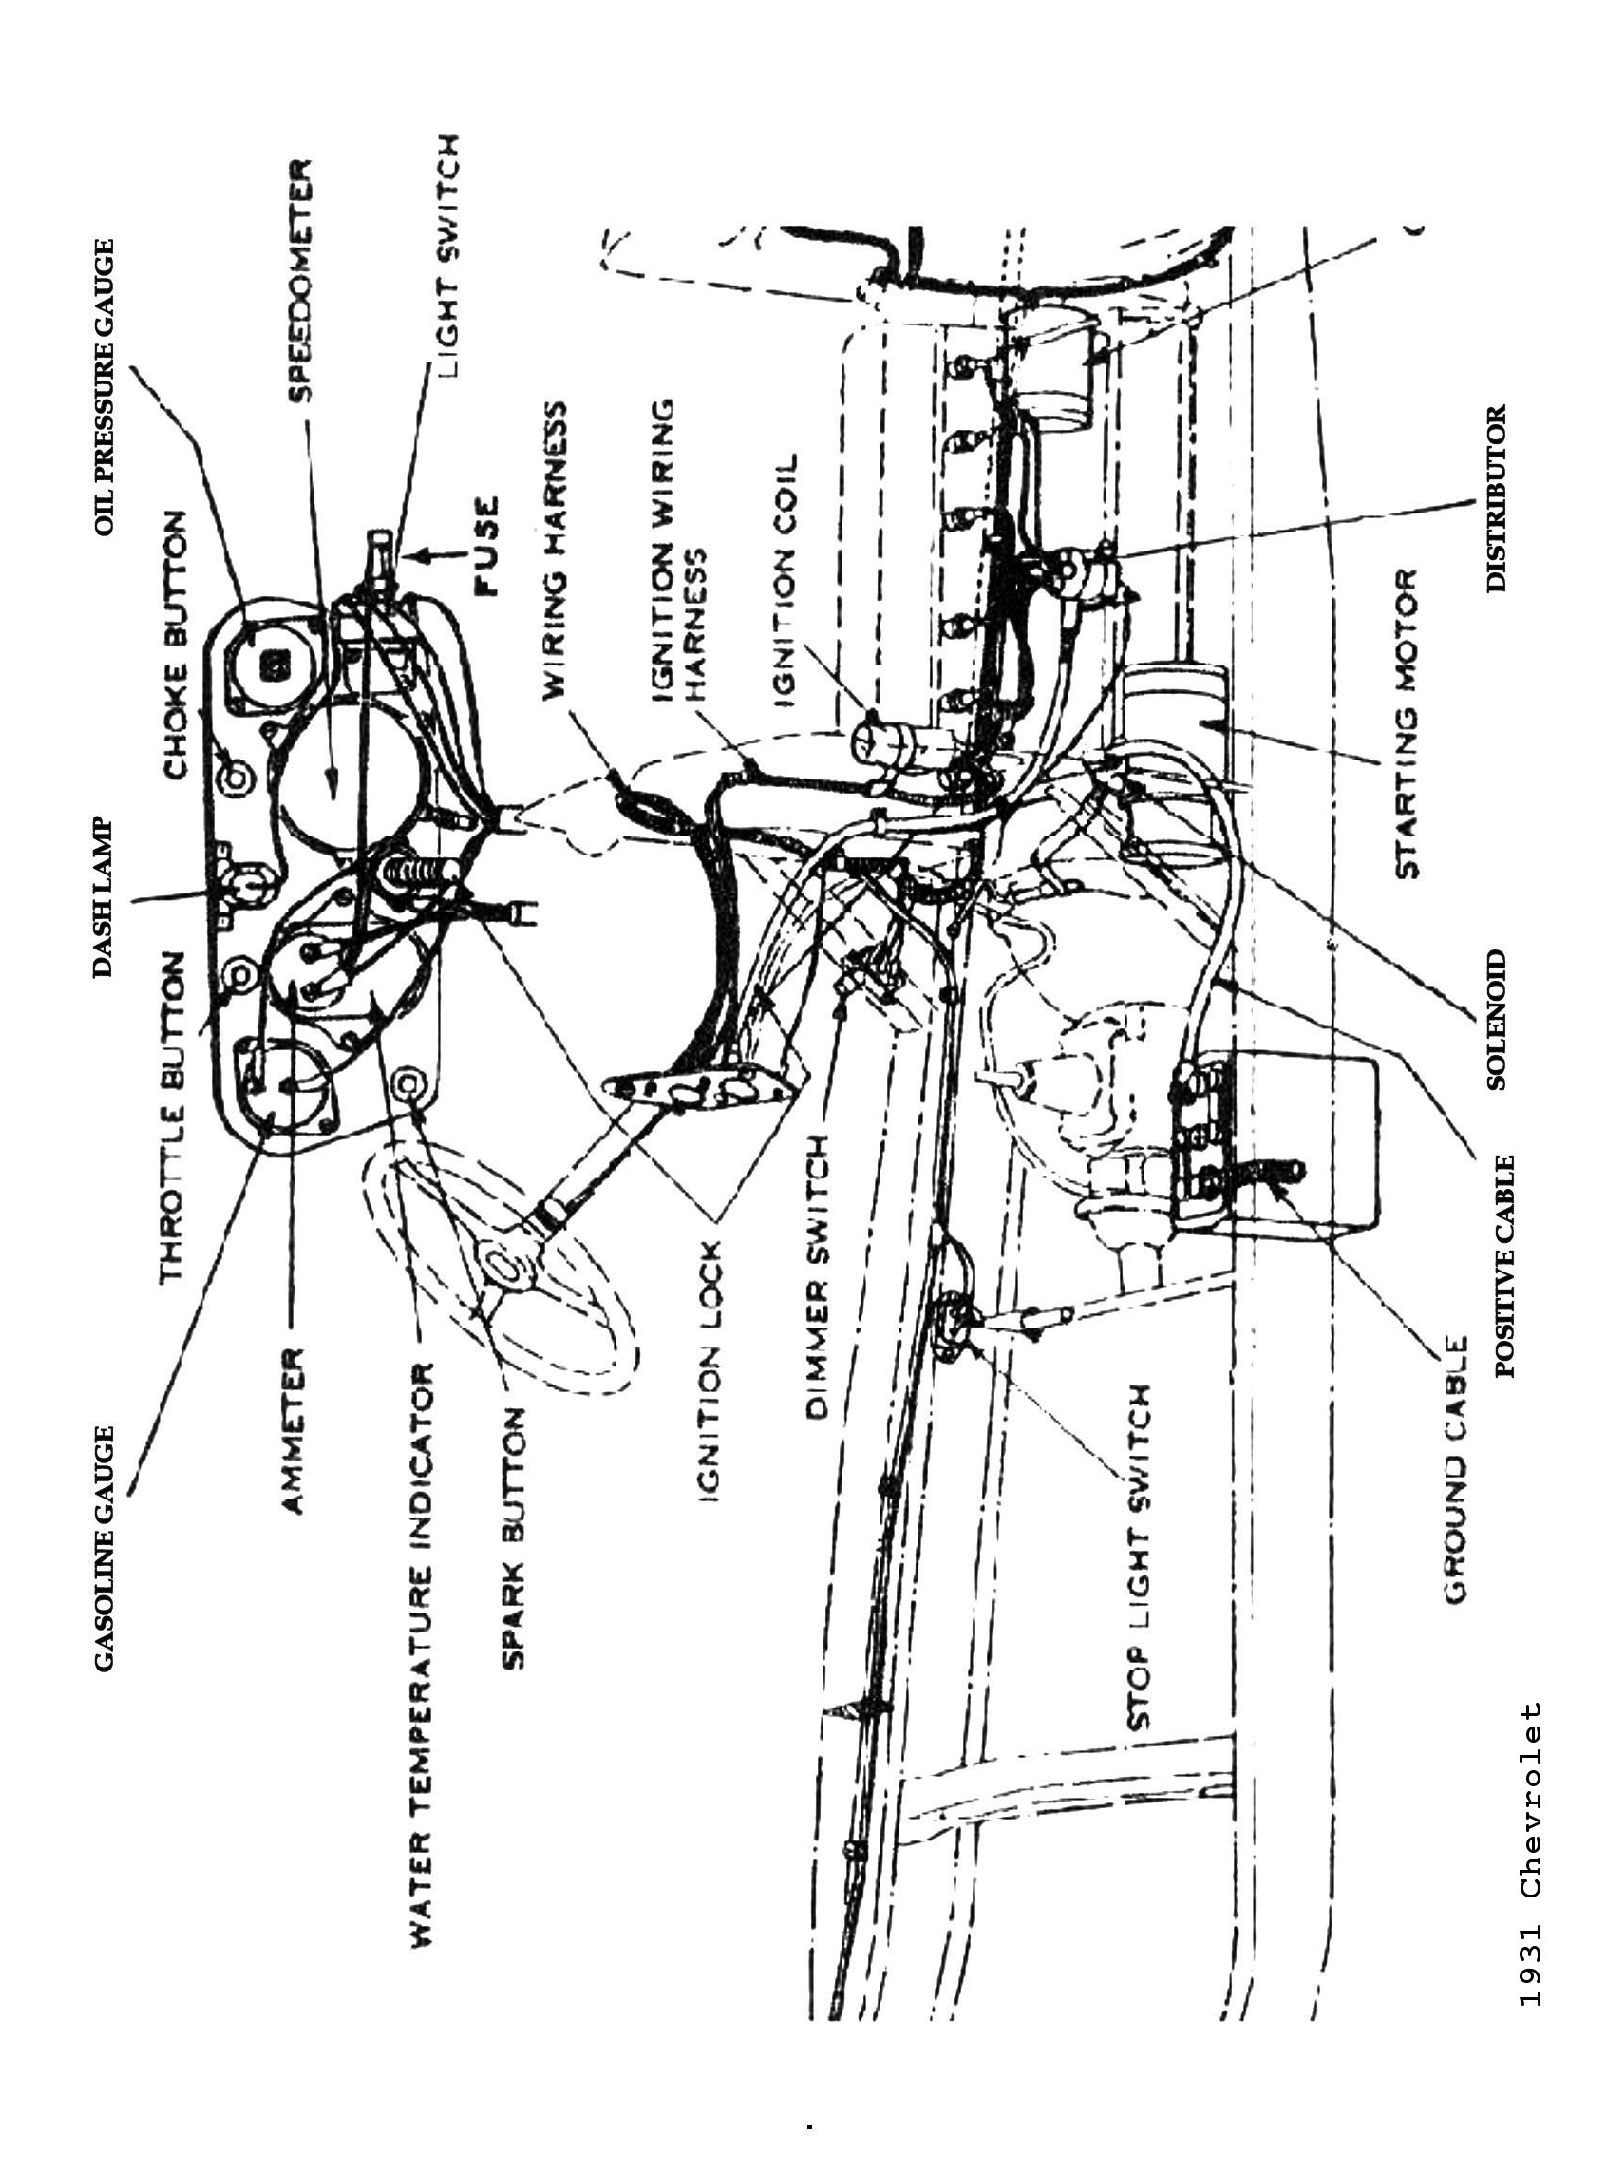 31harness chevy wiring diagrams wiring harness diagram at n-0.co